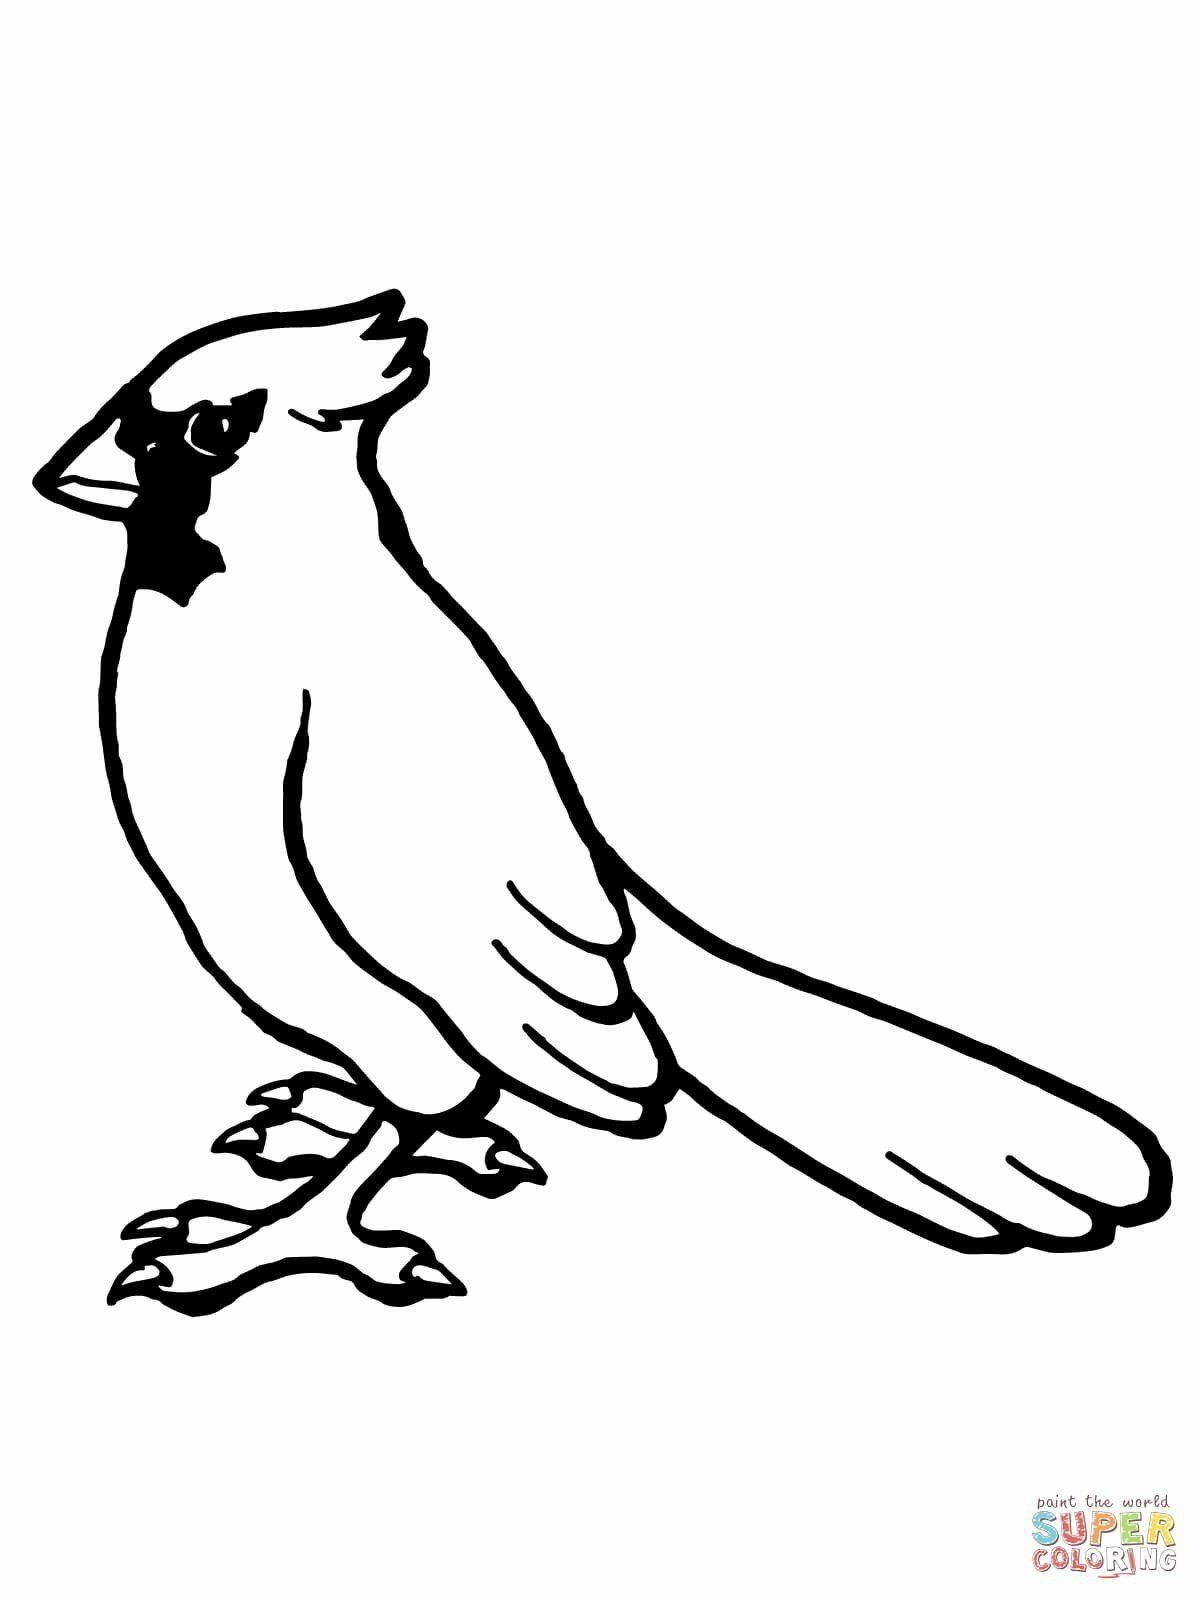 Arizona Cardinals Coloring Pages Arizona Cardinals Coloring Page Lovely Arizona Cardinals Bird Coloring Pages Animal Coloring Pages Coloring Pages